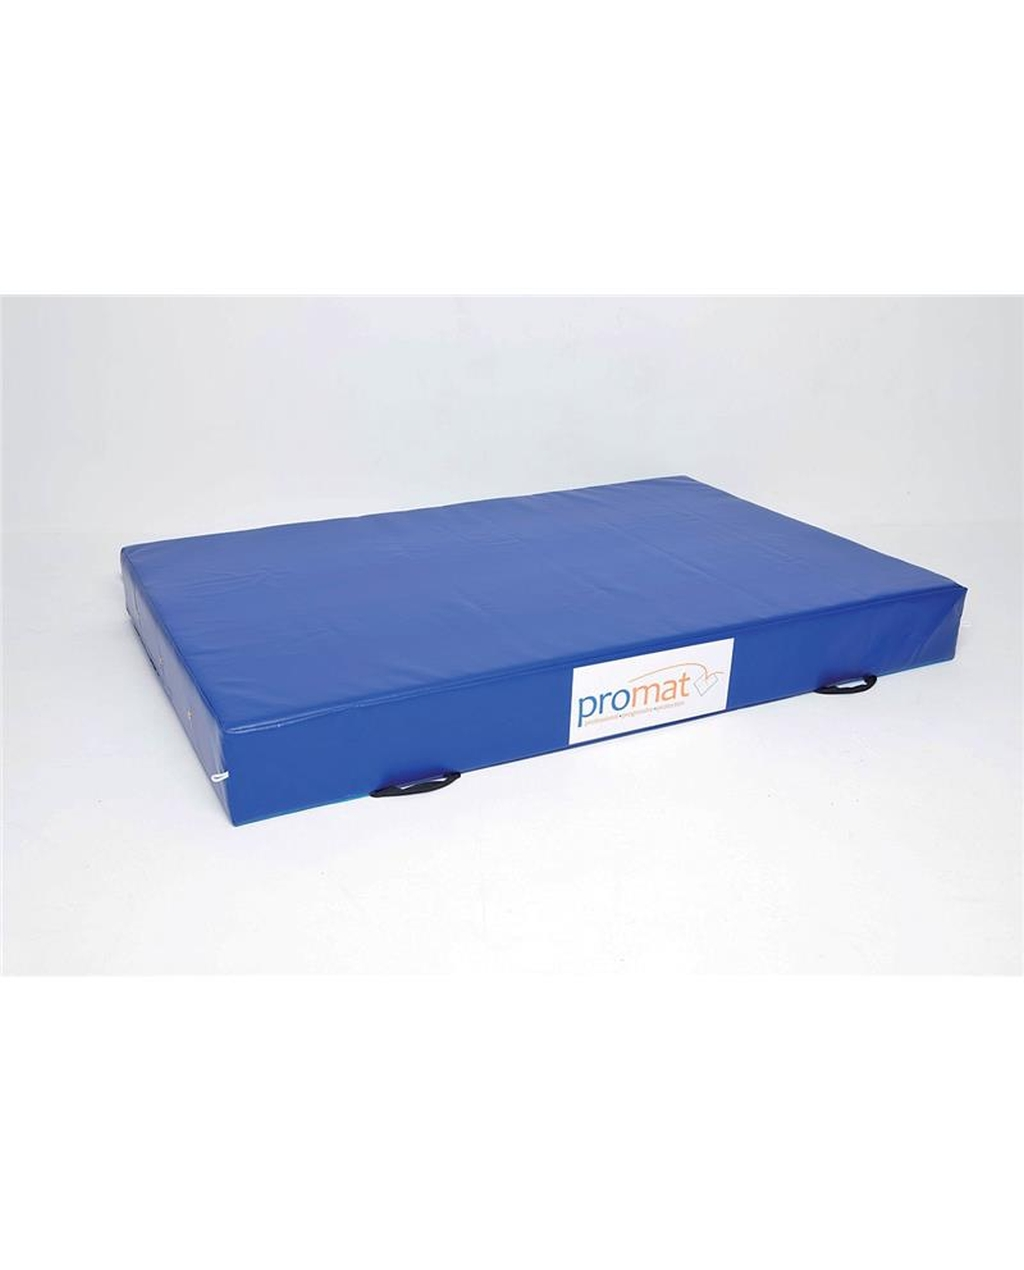 CRASH MAT 2.44M X 1.22M X 250MM